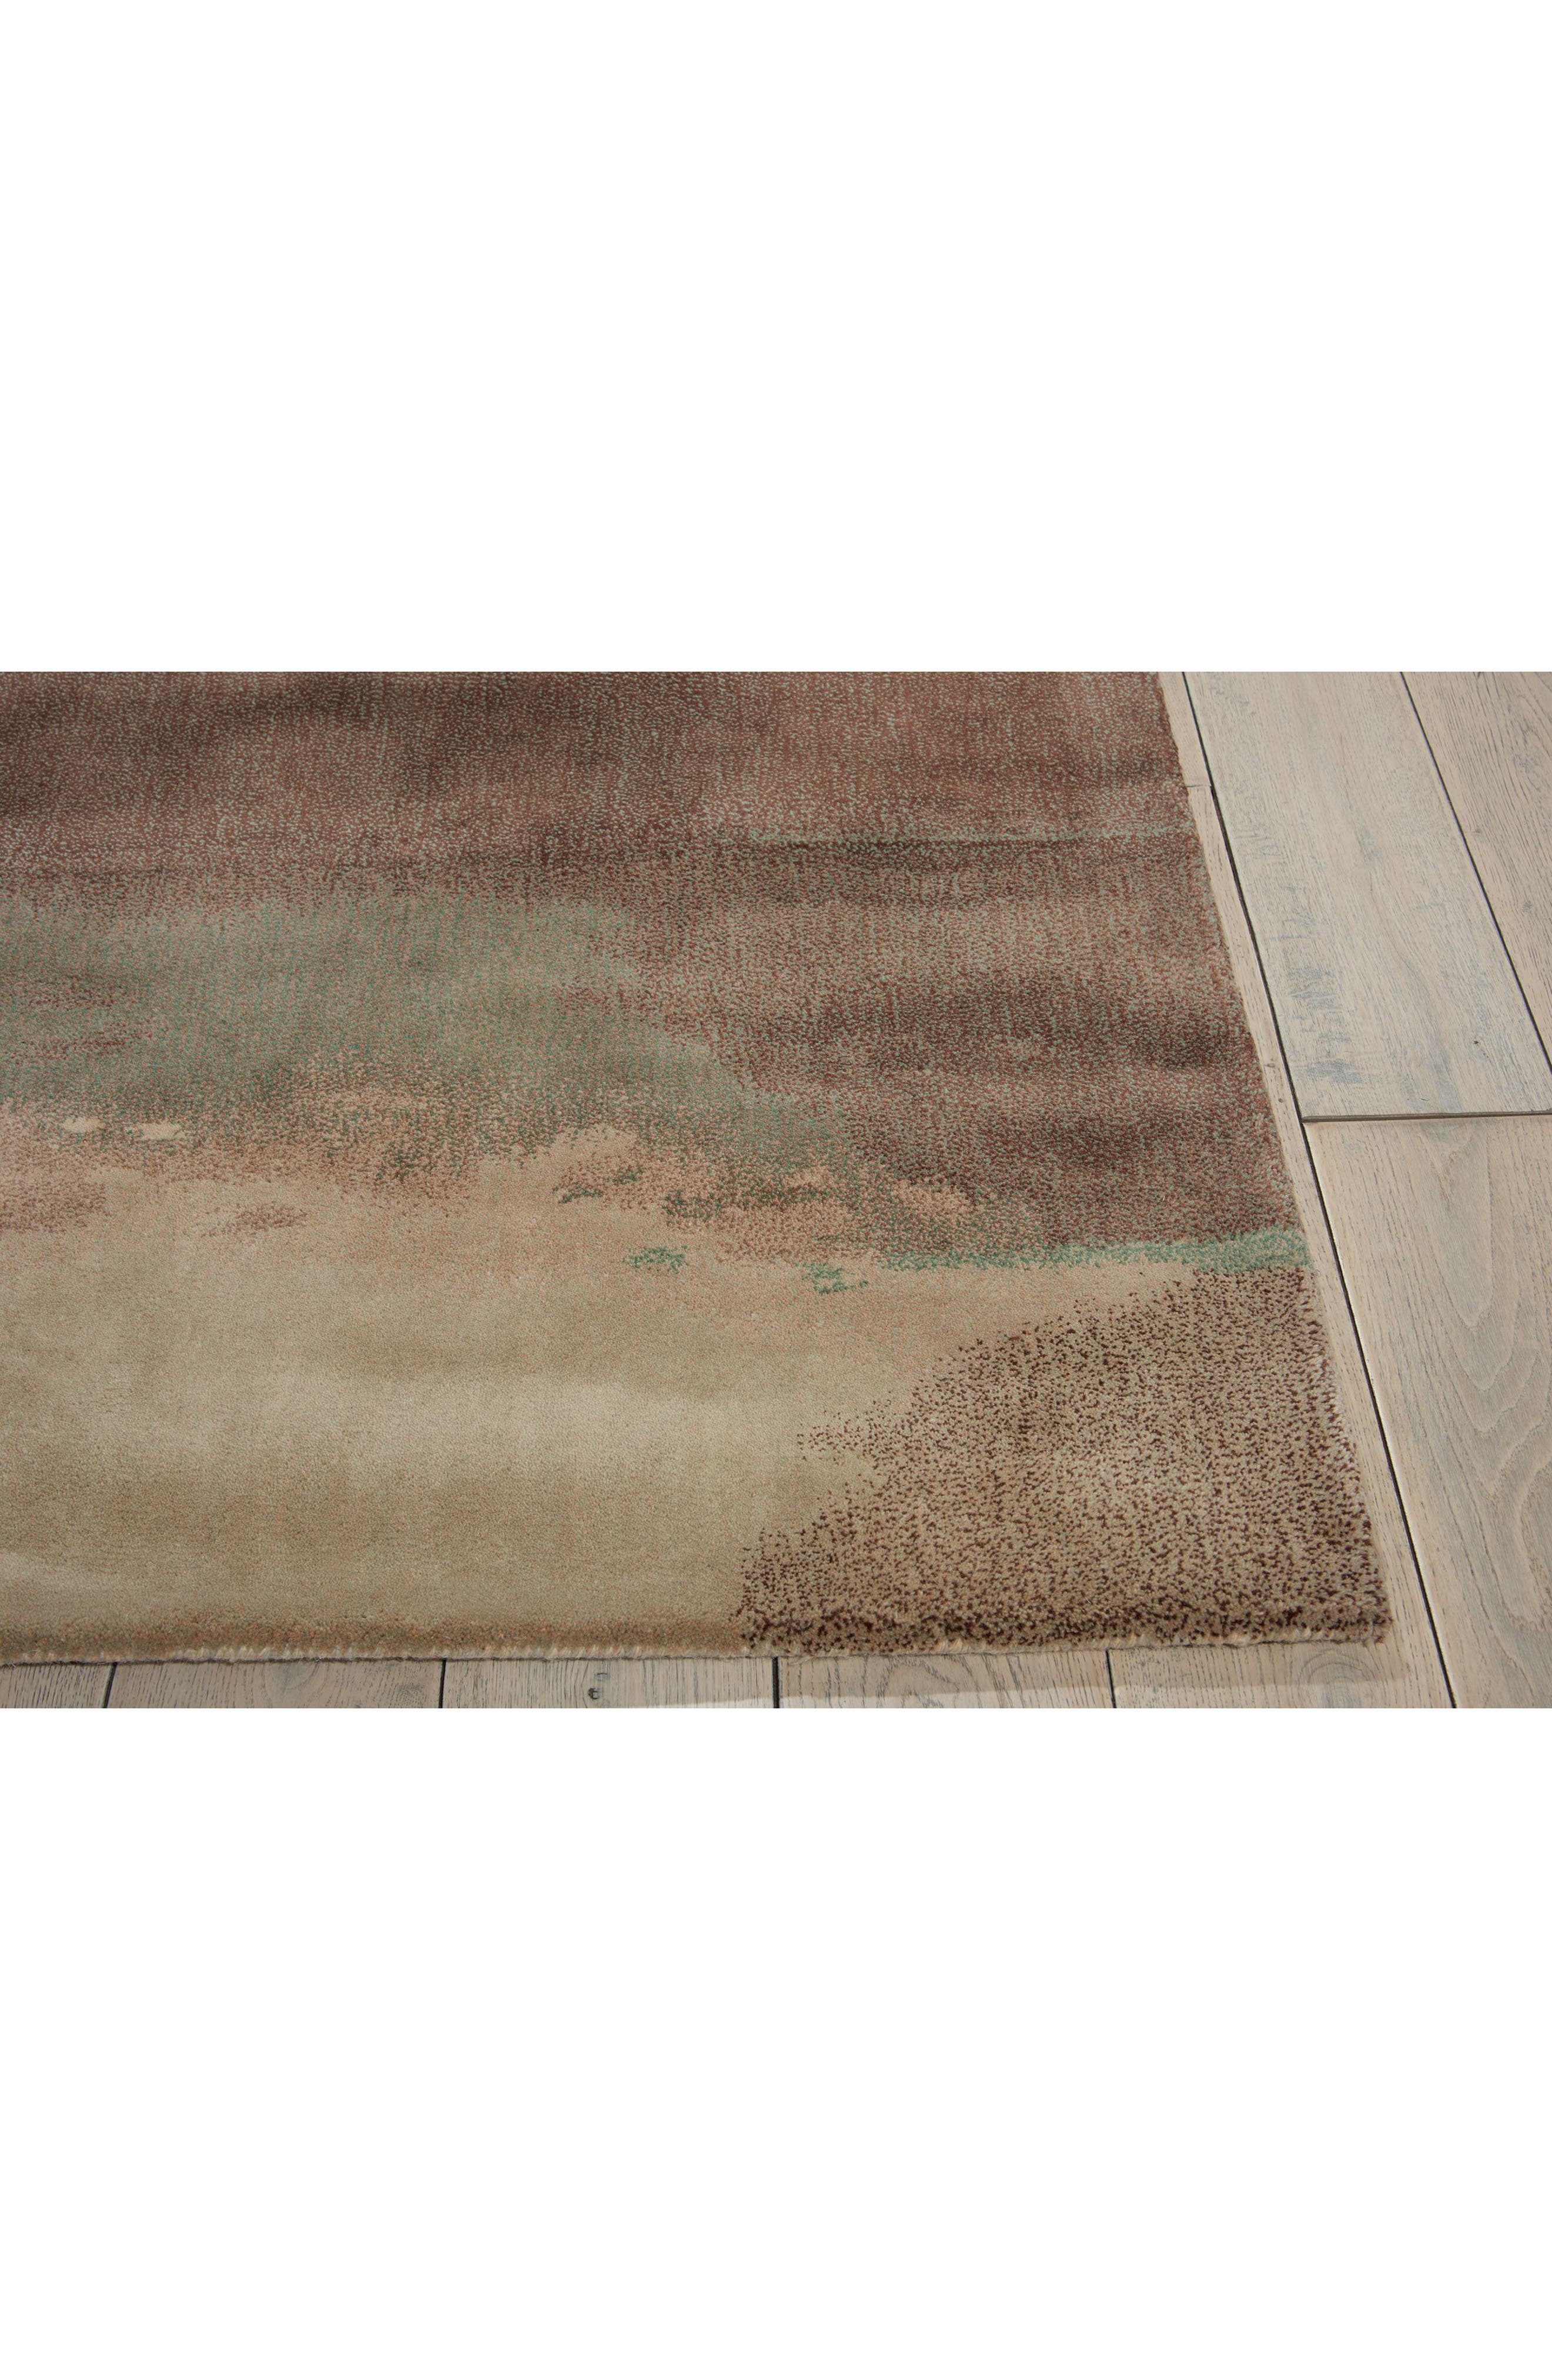 Luster Wash Wool Area Rug,                             Alternate thumbnail 32, color,